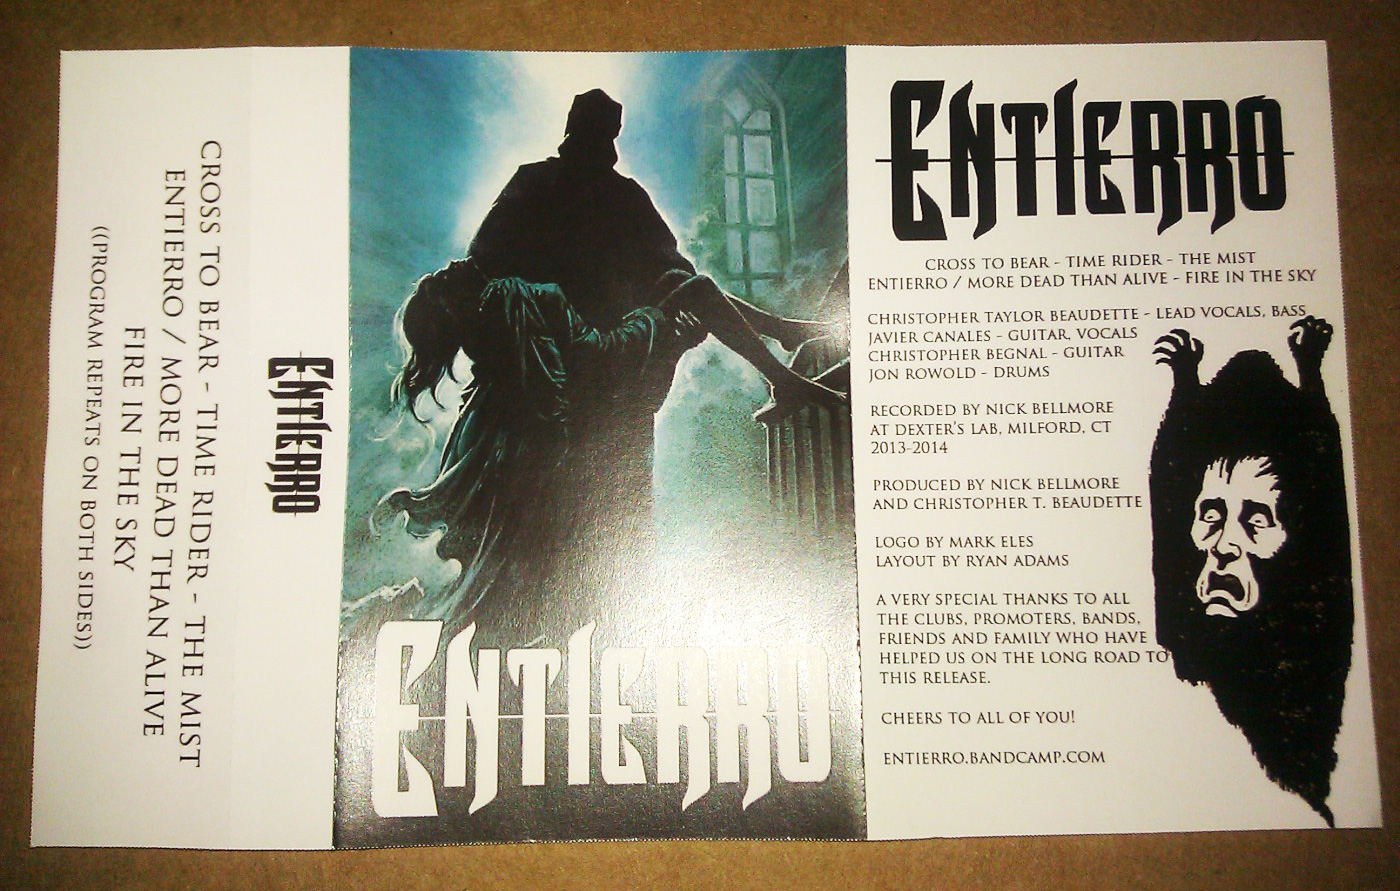 entierro-j-card-unfolded